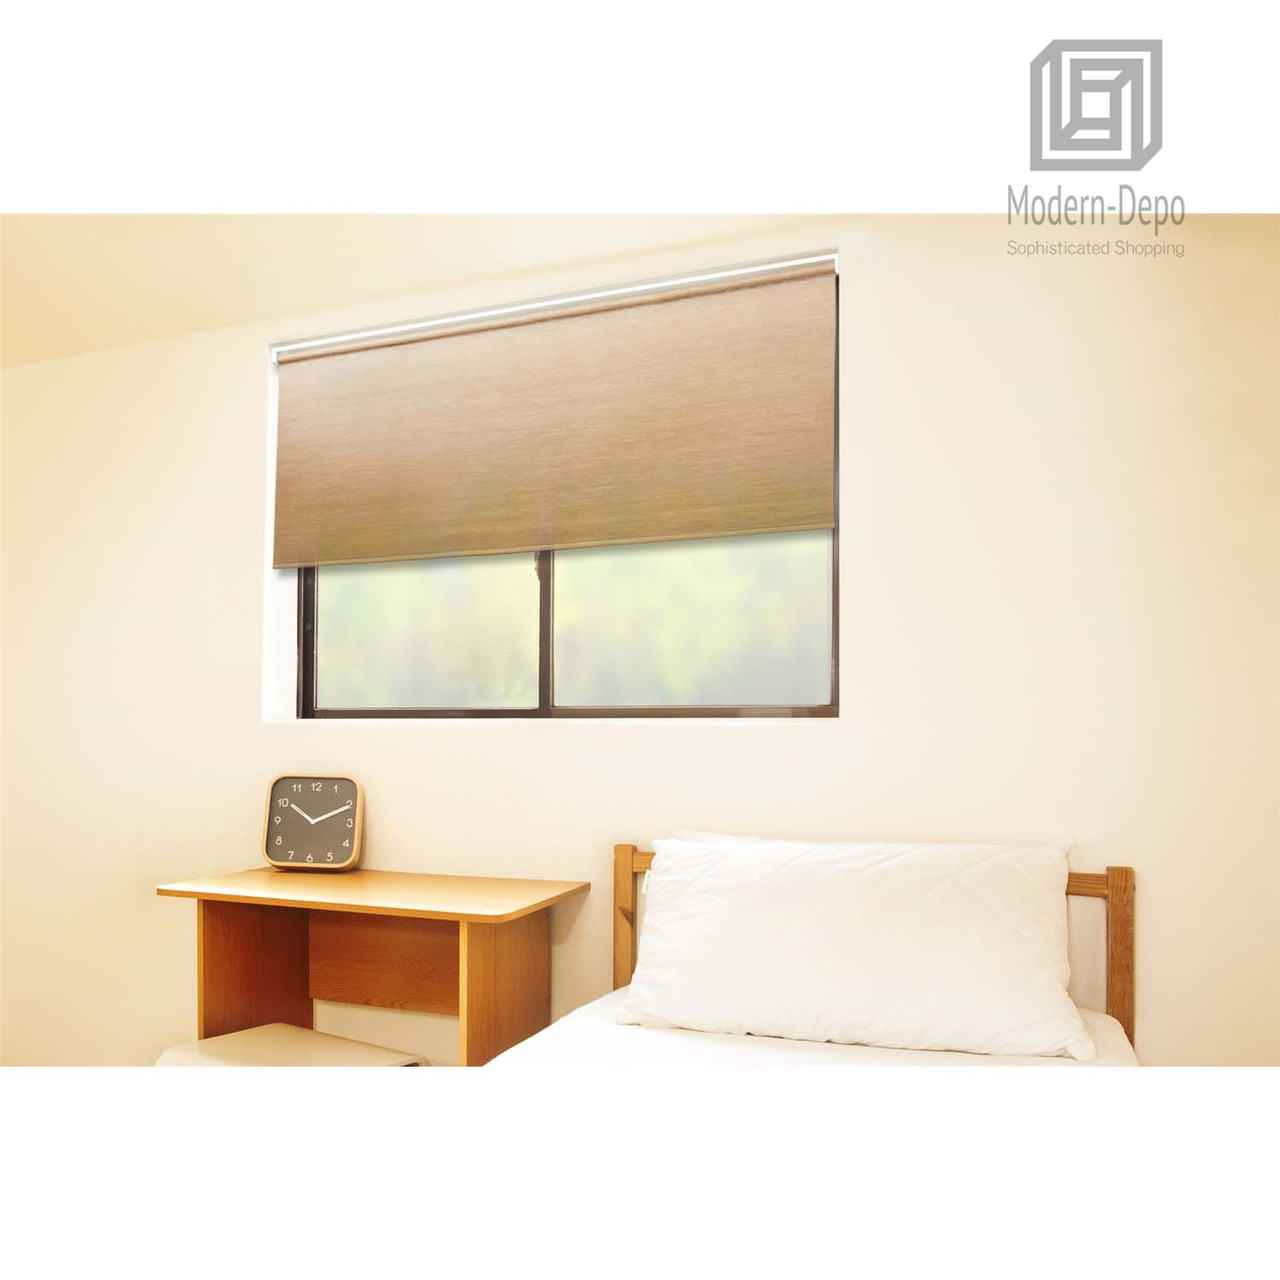 Cordless Roller Window Shades Motorized Remote Natural Woven 31 W X 72 H Wheat Modern Depo